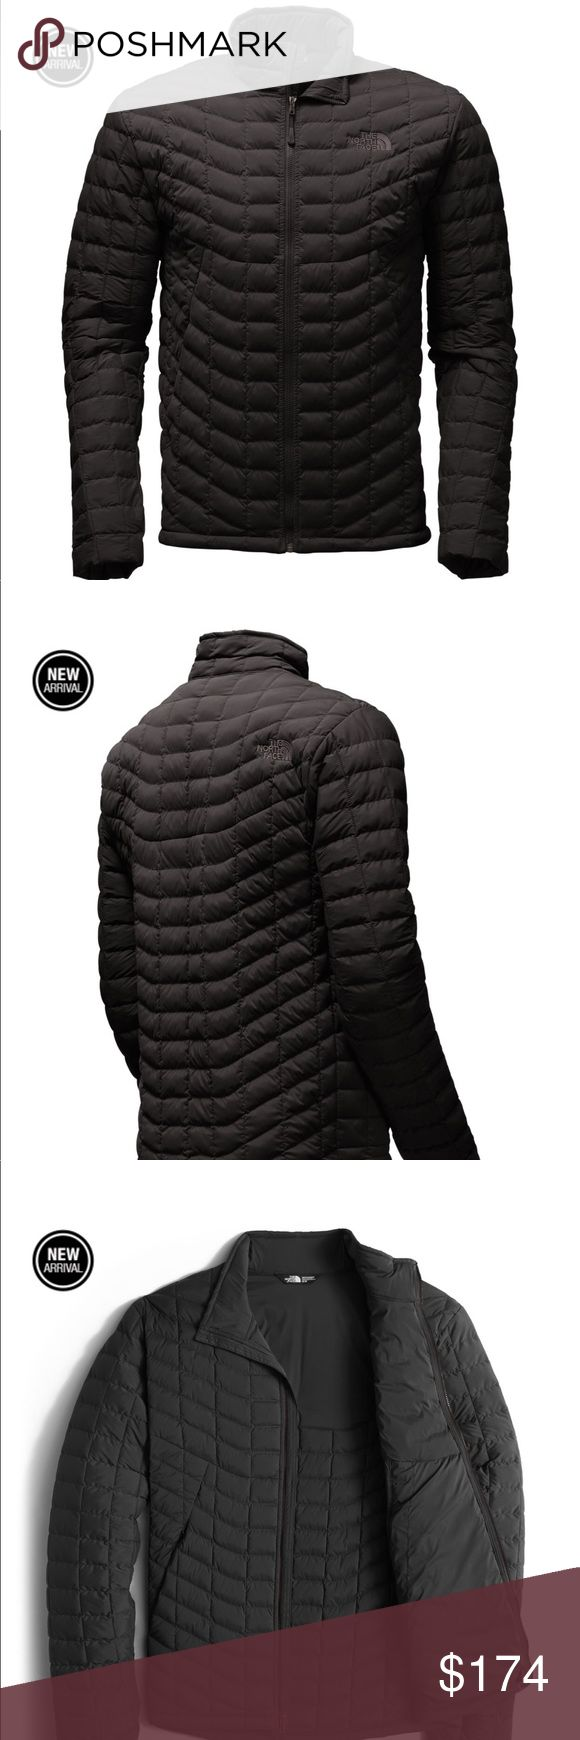 Men's Stretch Thermoball Jacket. Size M Just in time for the cold weather! Slim fit down filled Northface jacket in black. North Face Jackets & Coats Ski & Snowboard